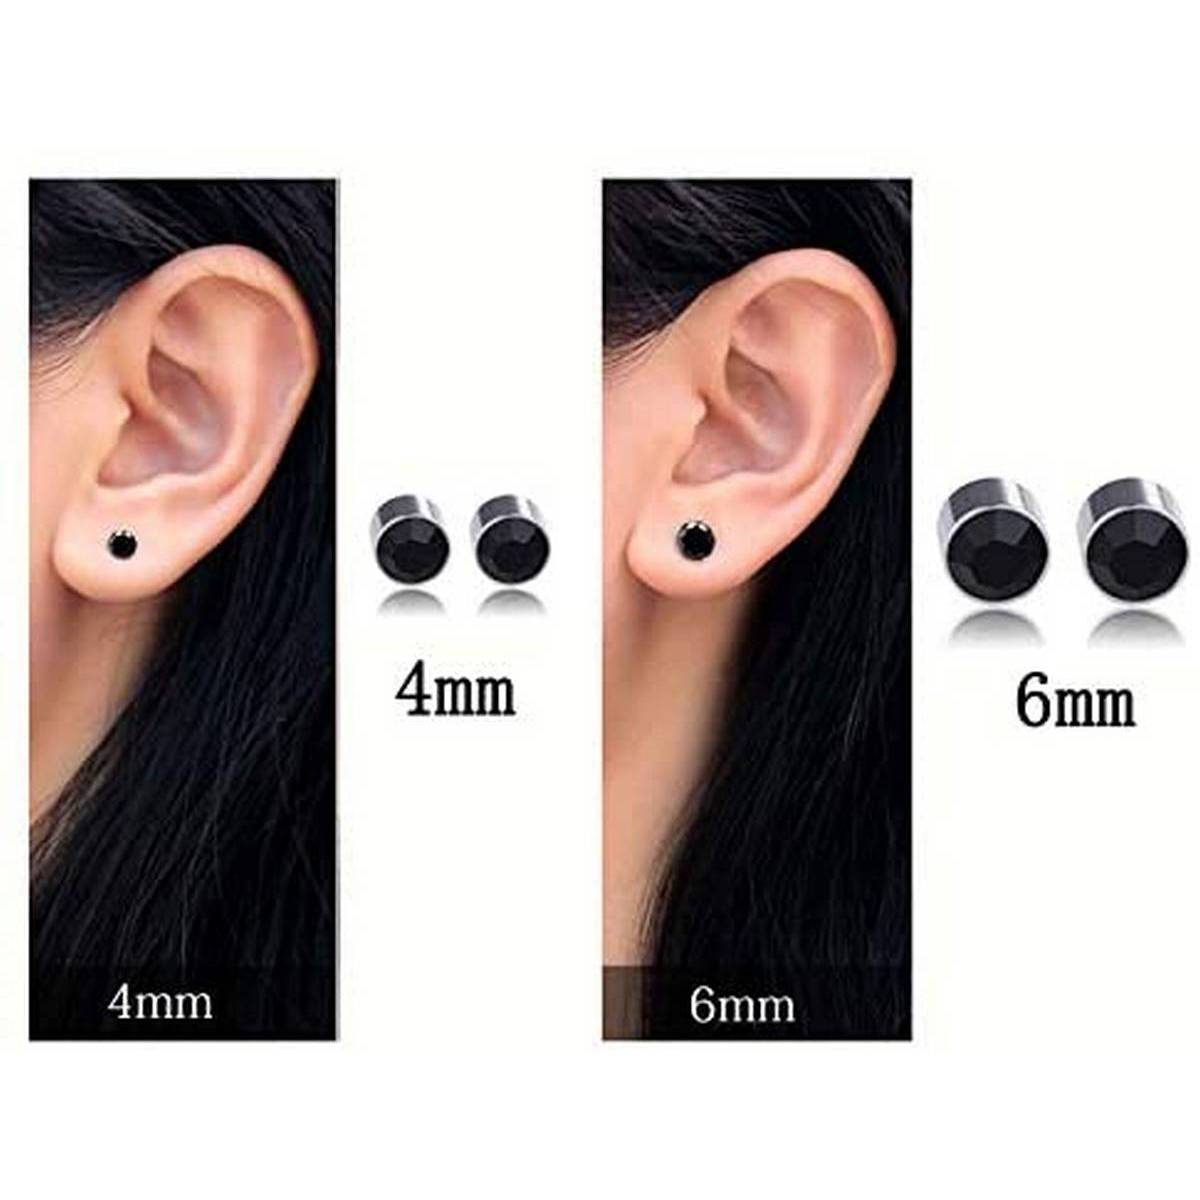 Magnet Tops For Boys & Girls Black Men's Earrings Round Jewelry (Pair of 2 Pieces) | Black Alloy Magnet Tops for Girls & Boys, Magnetic Round Earrings for Men | WHOLE SALE PRICE Magnetic Studs, Buttons Earring Holders and Fashion Tops for Men and Women